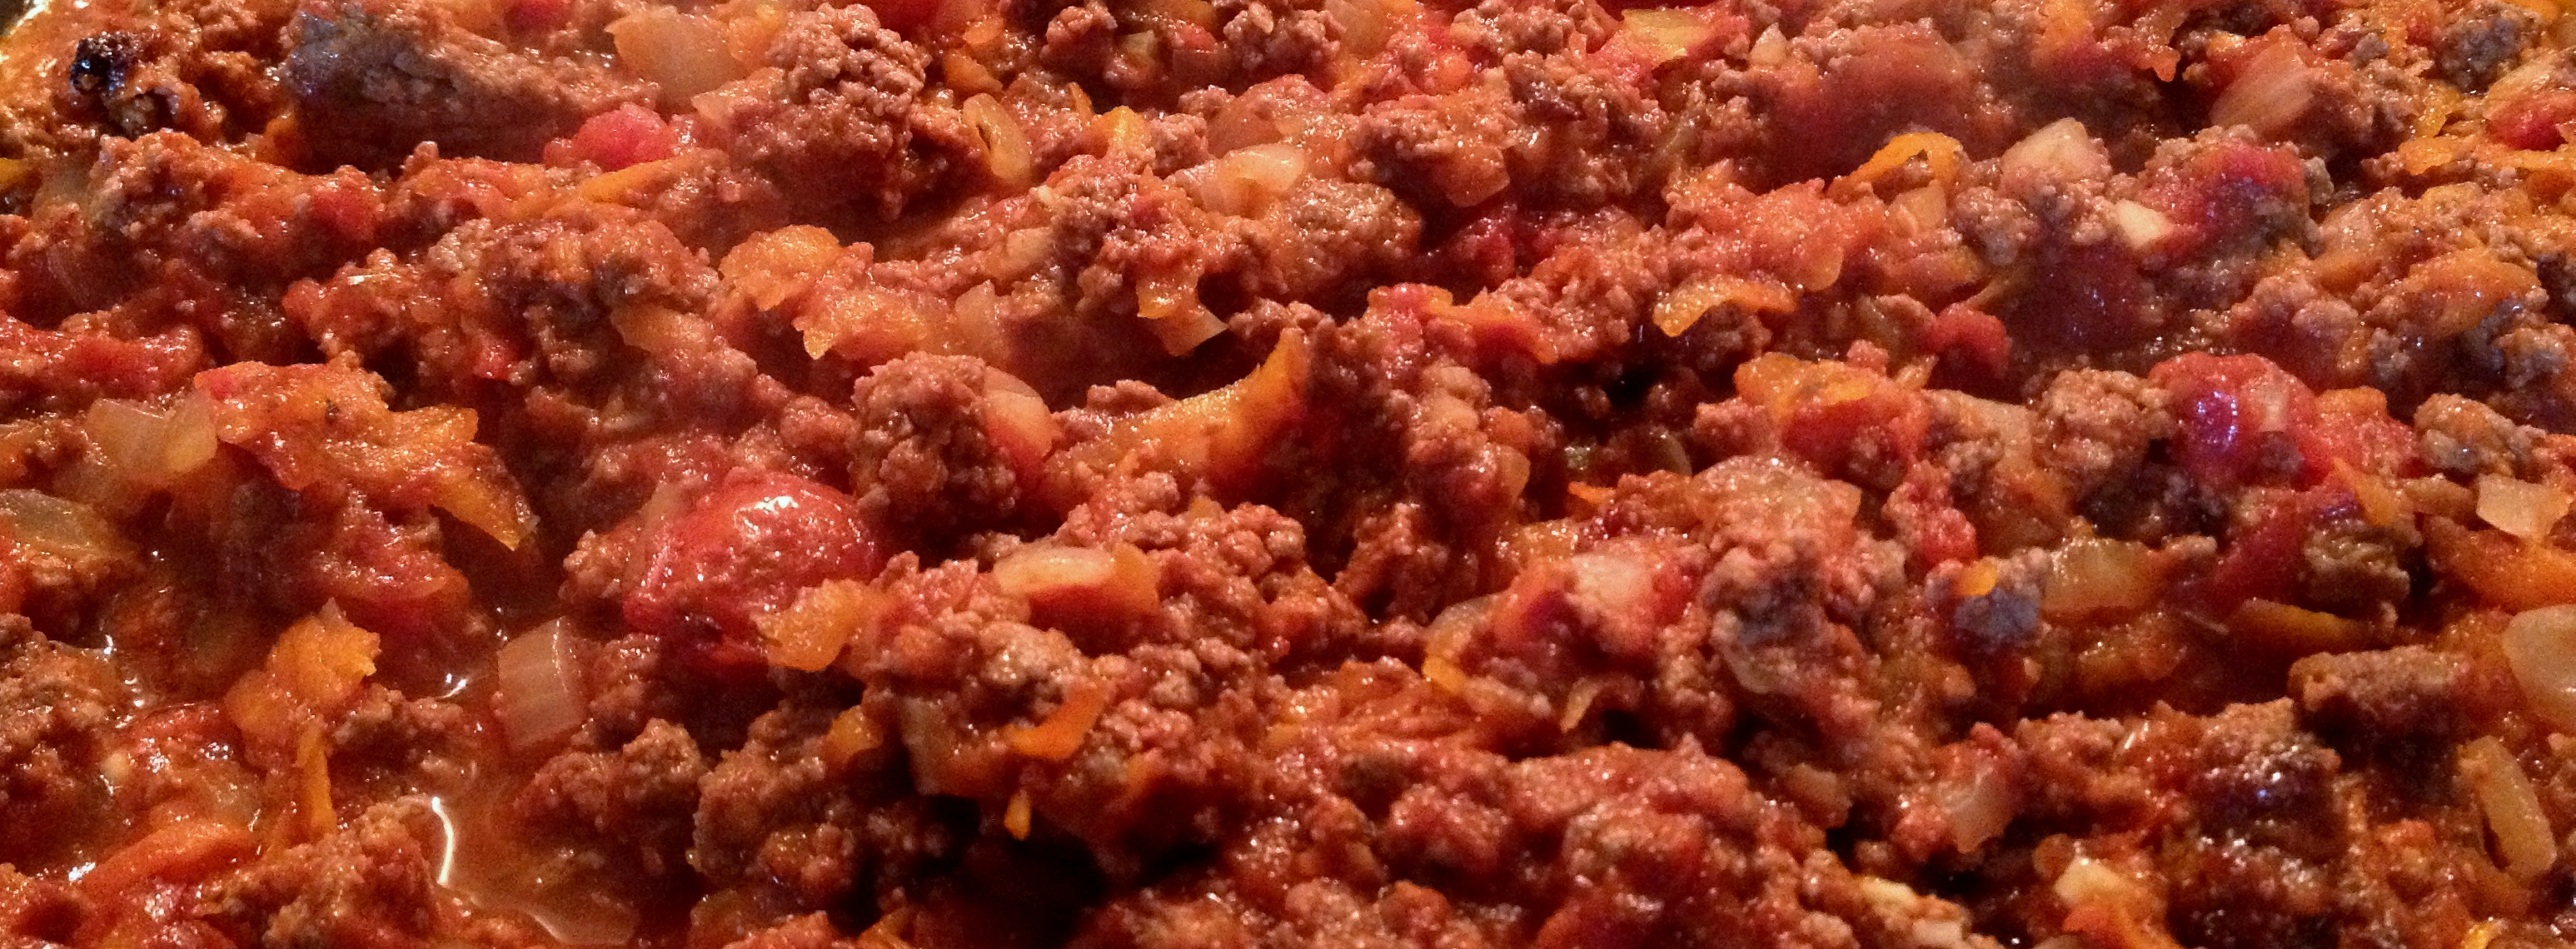 Heather's Bolognese